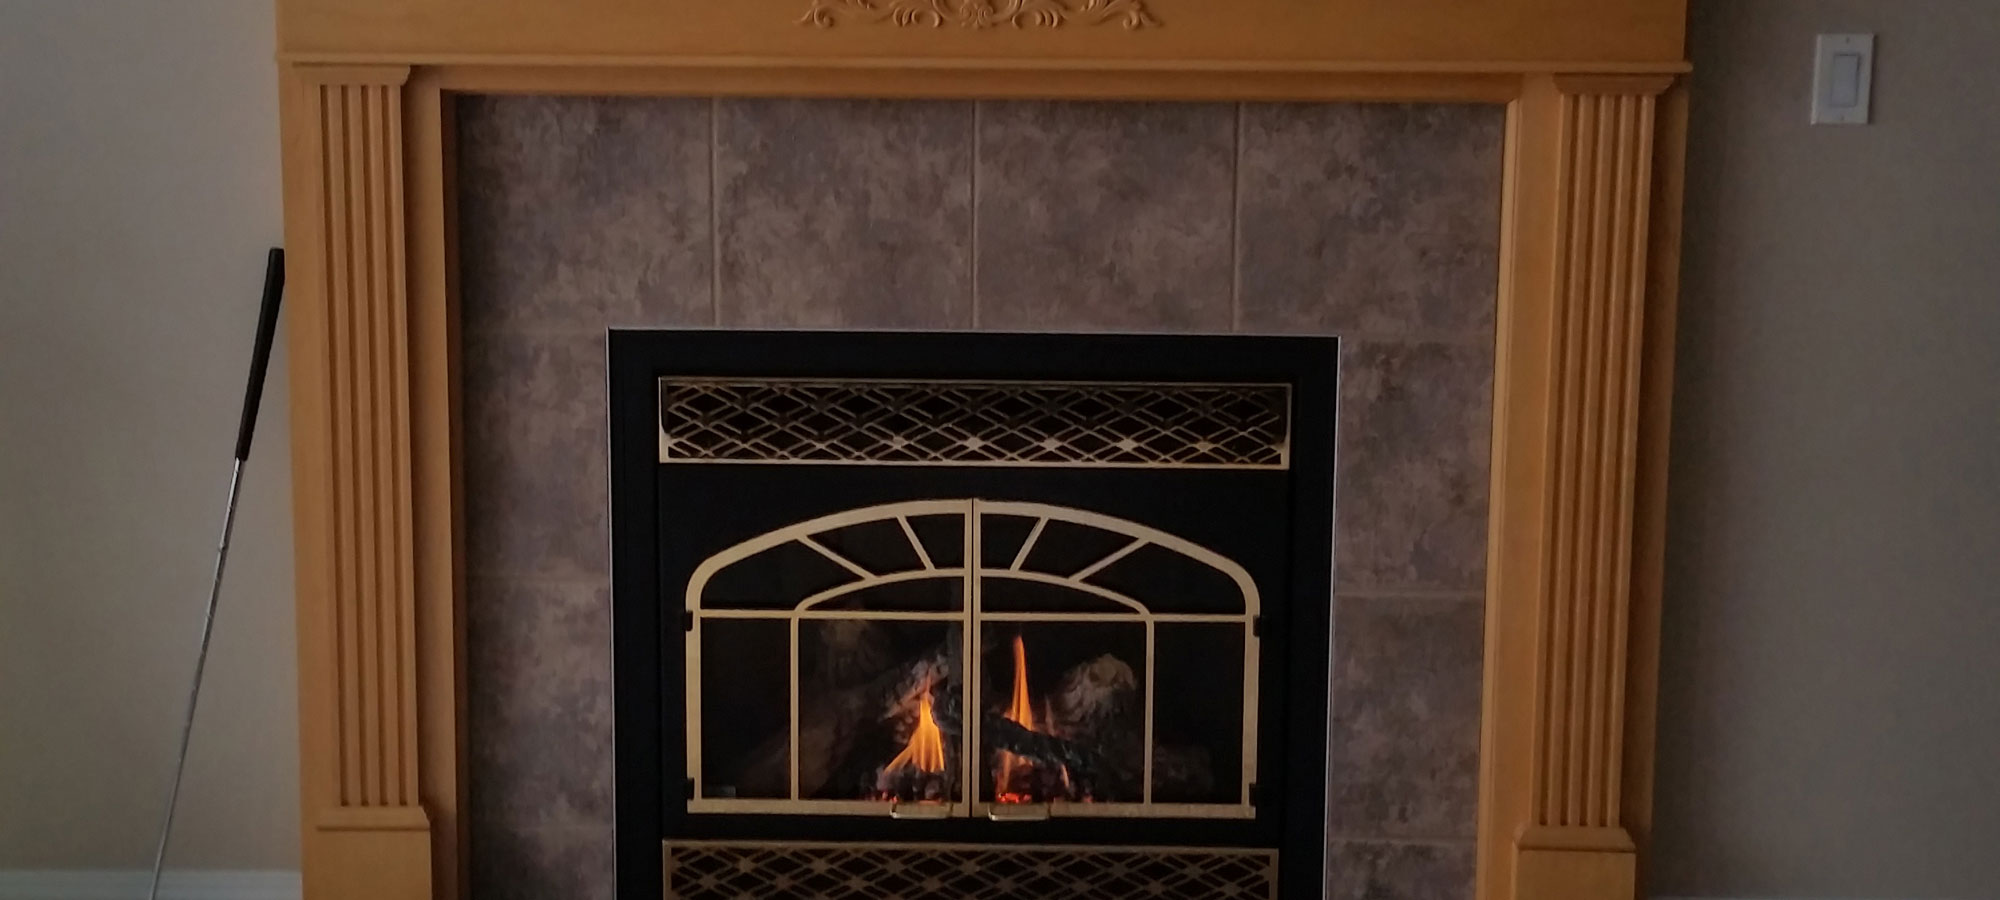 Gas Fireplace Repair Cleaning Replacement Edmonton Area